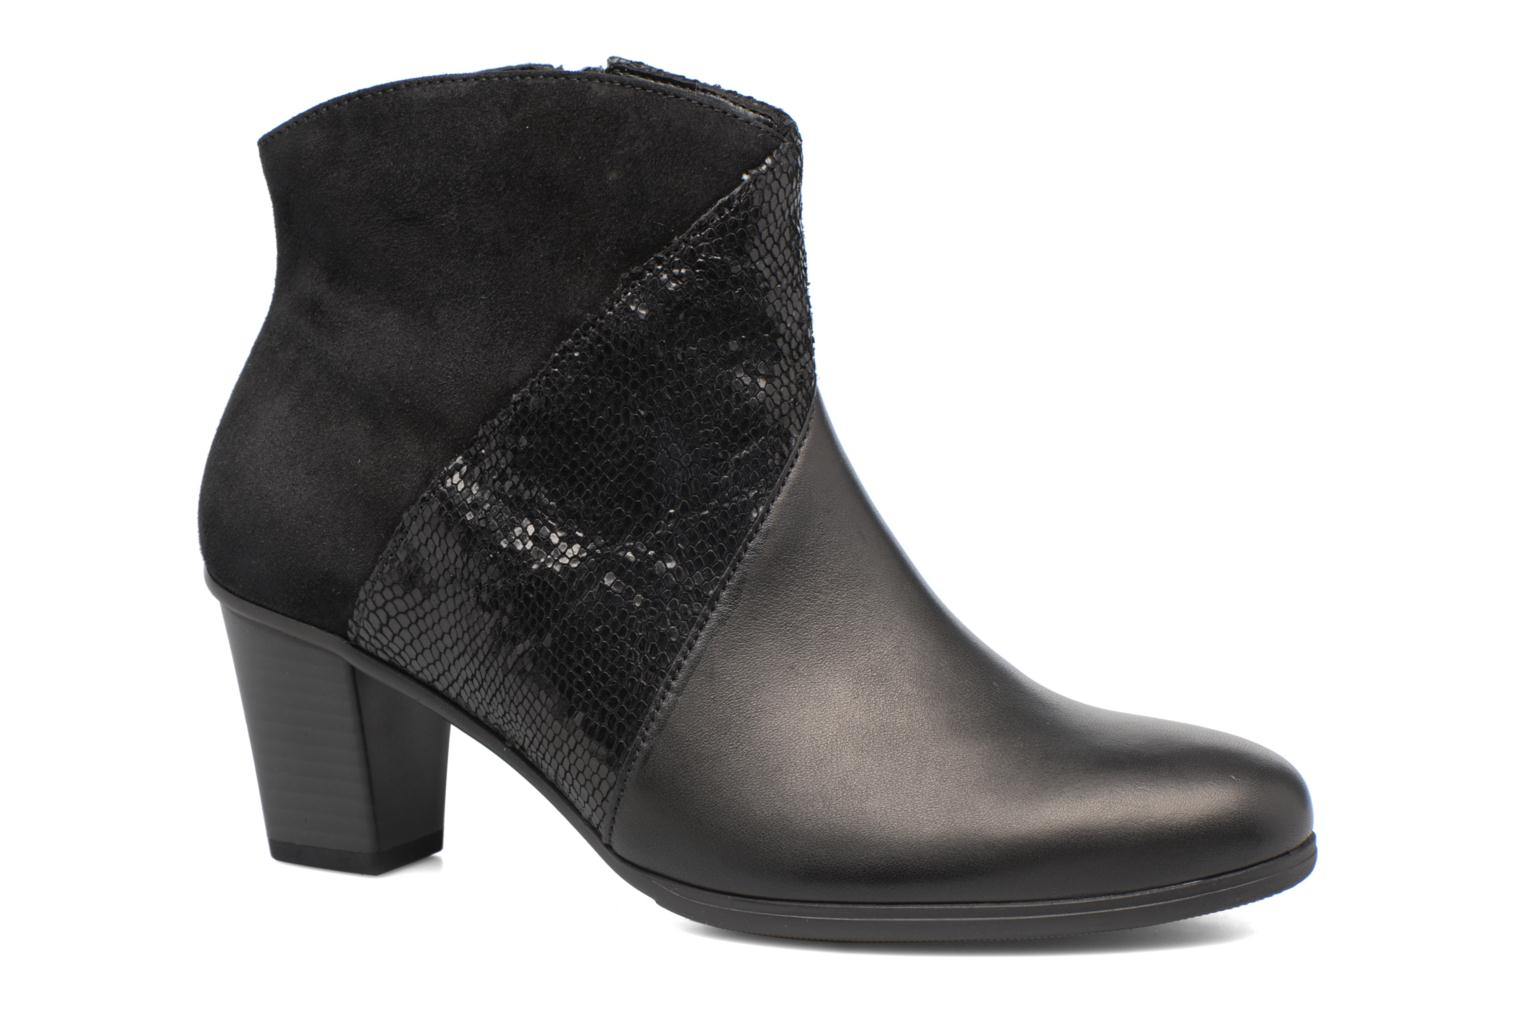 Marques Chaussure femme Gabor femme Piana Anthracite